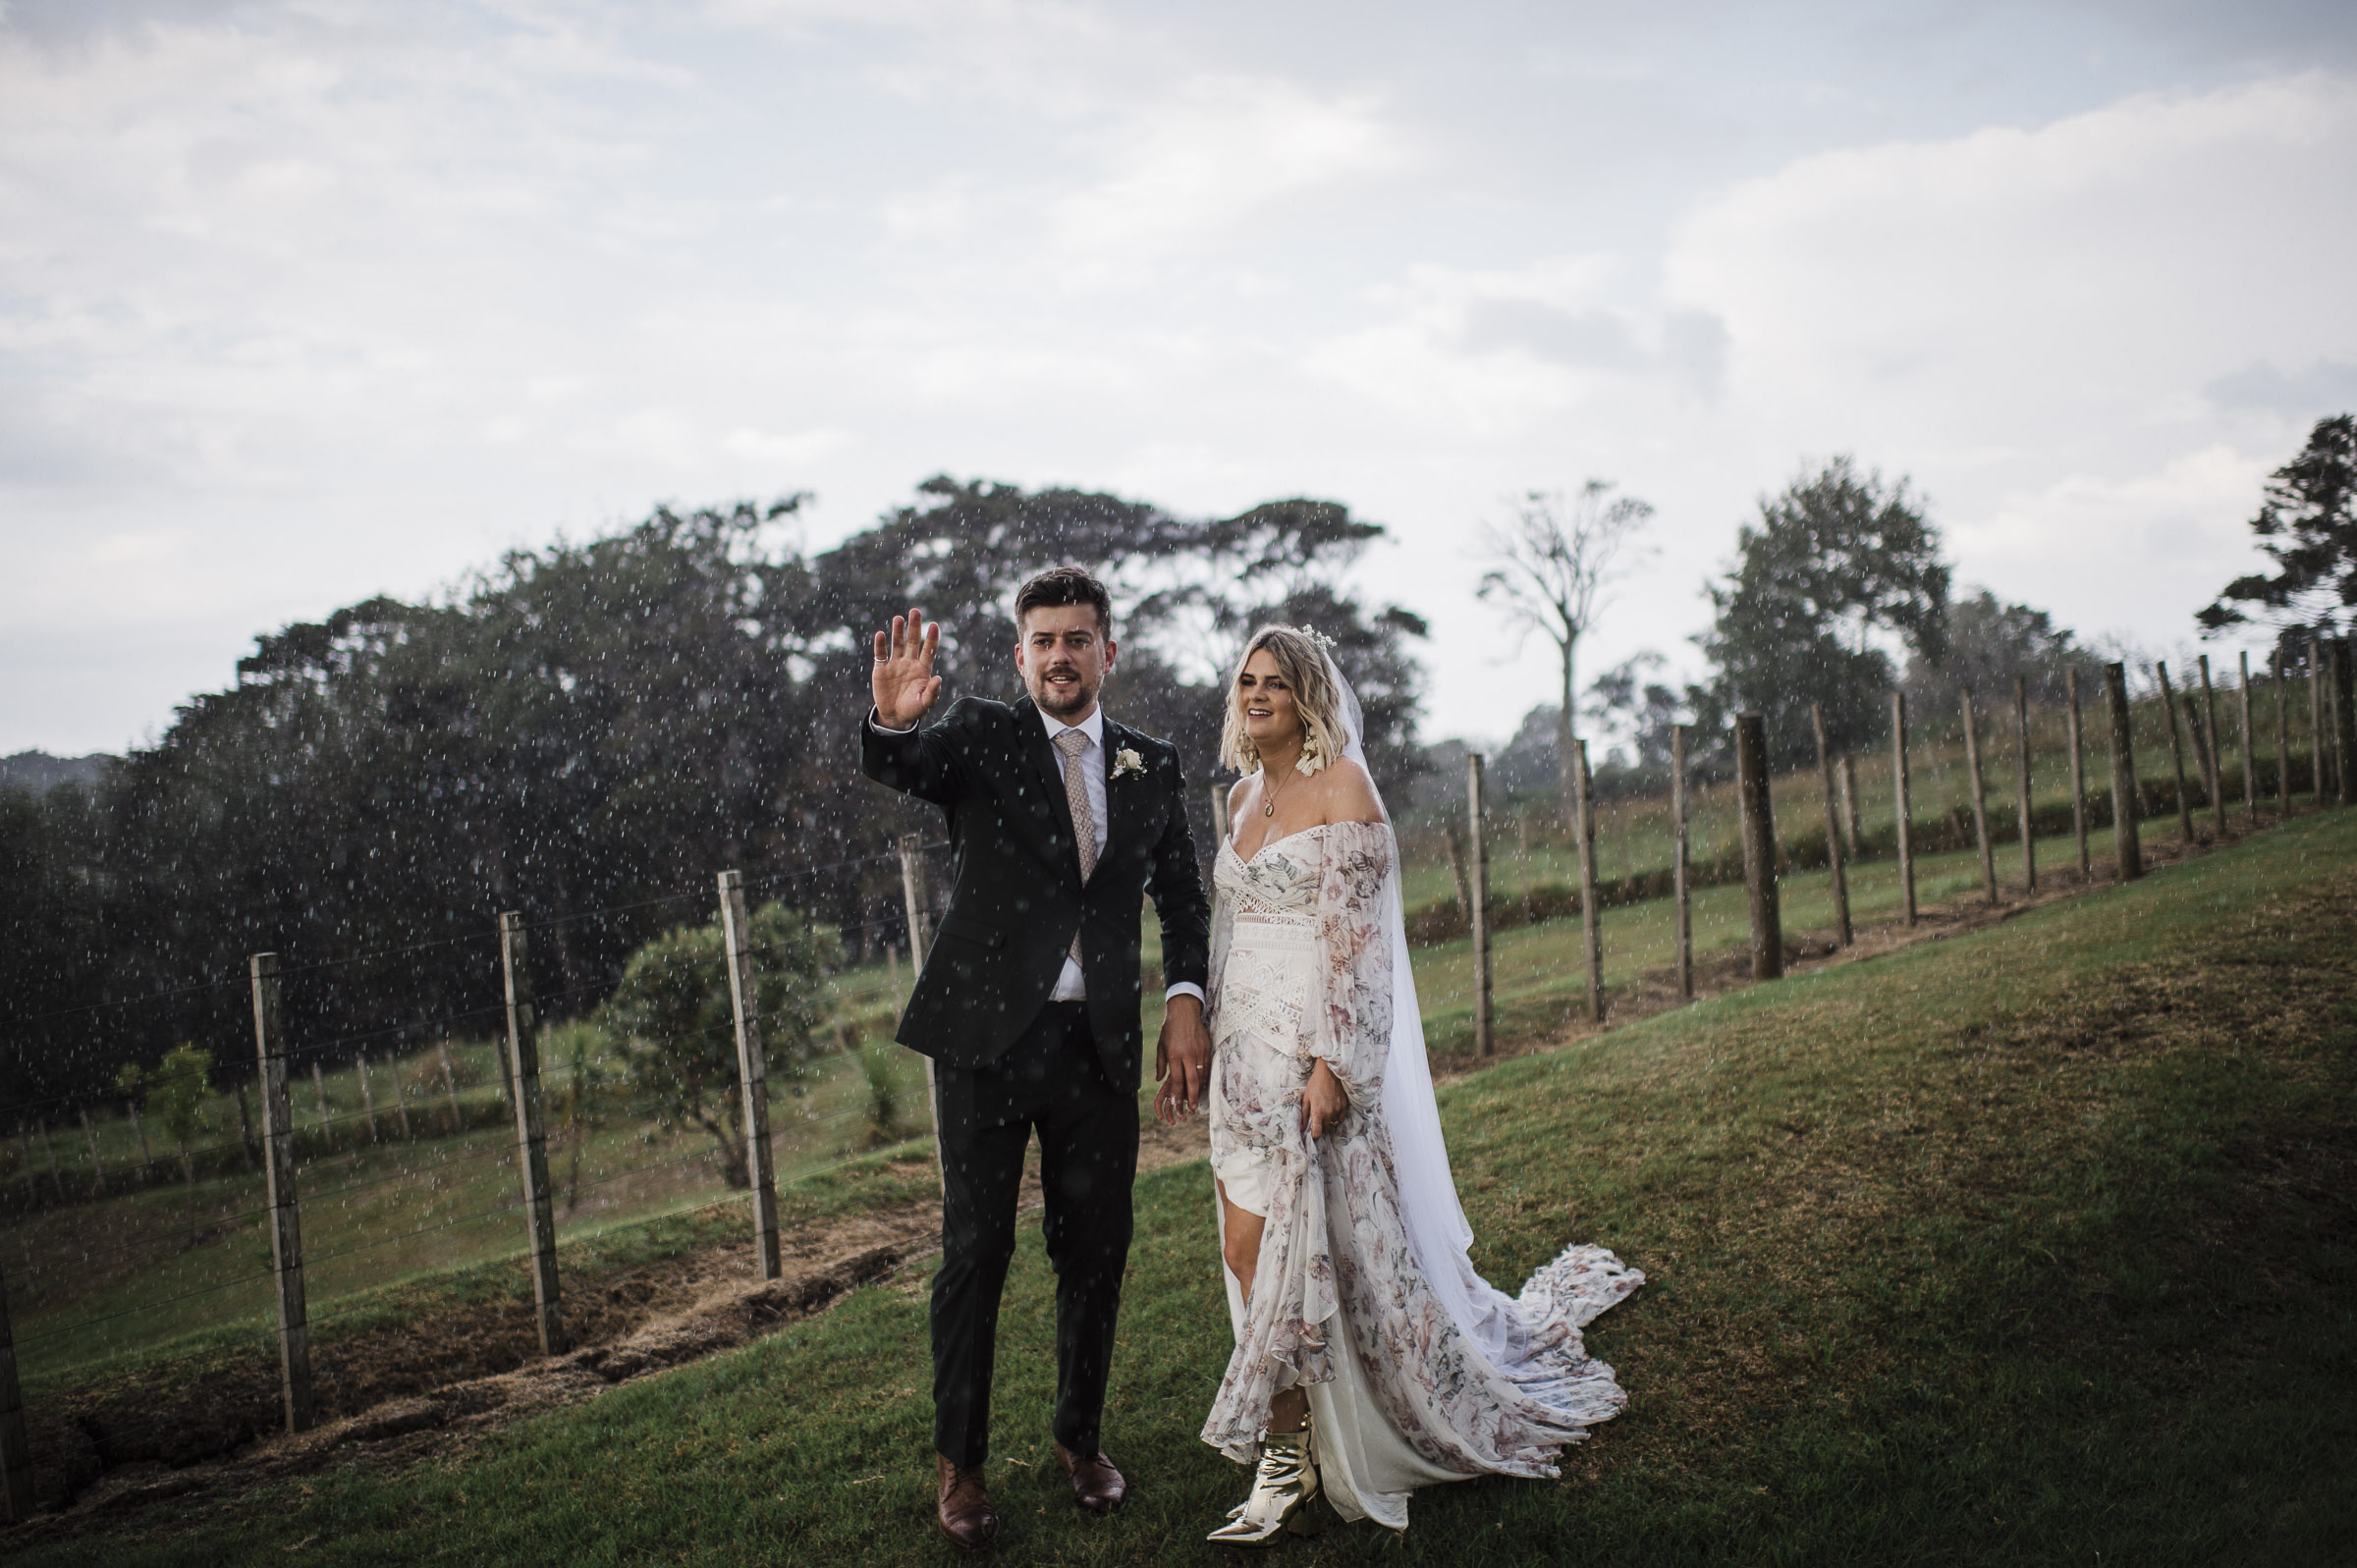 Ash_Tom_Mahurangi_New_Zealand_Wedding_Photographer-86.jpg